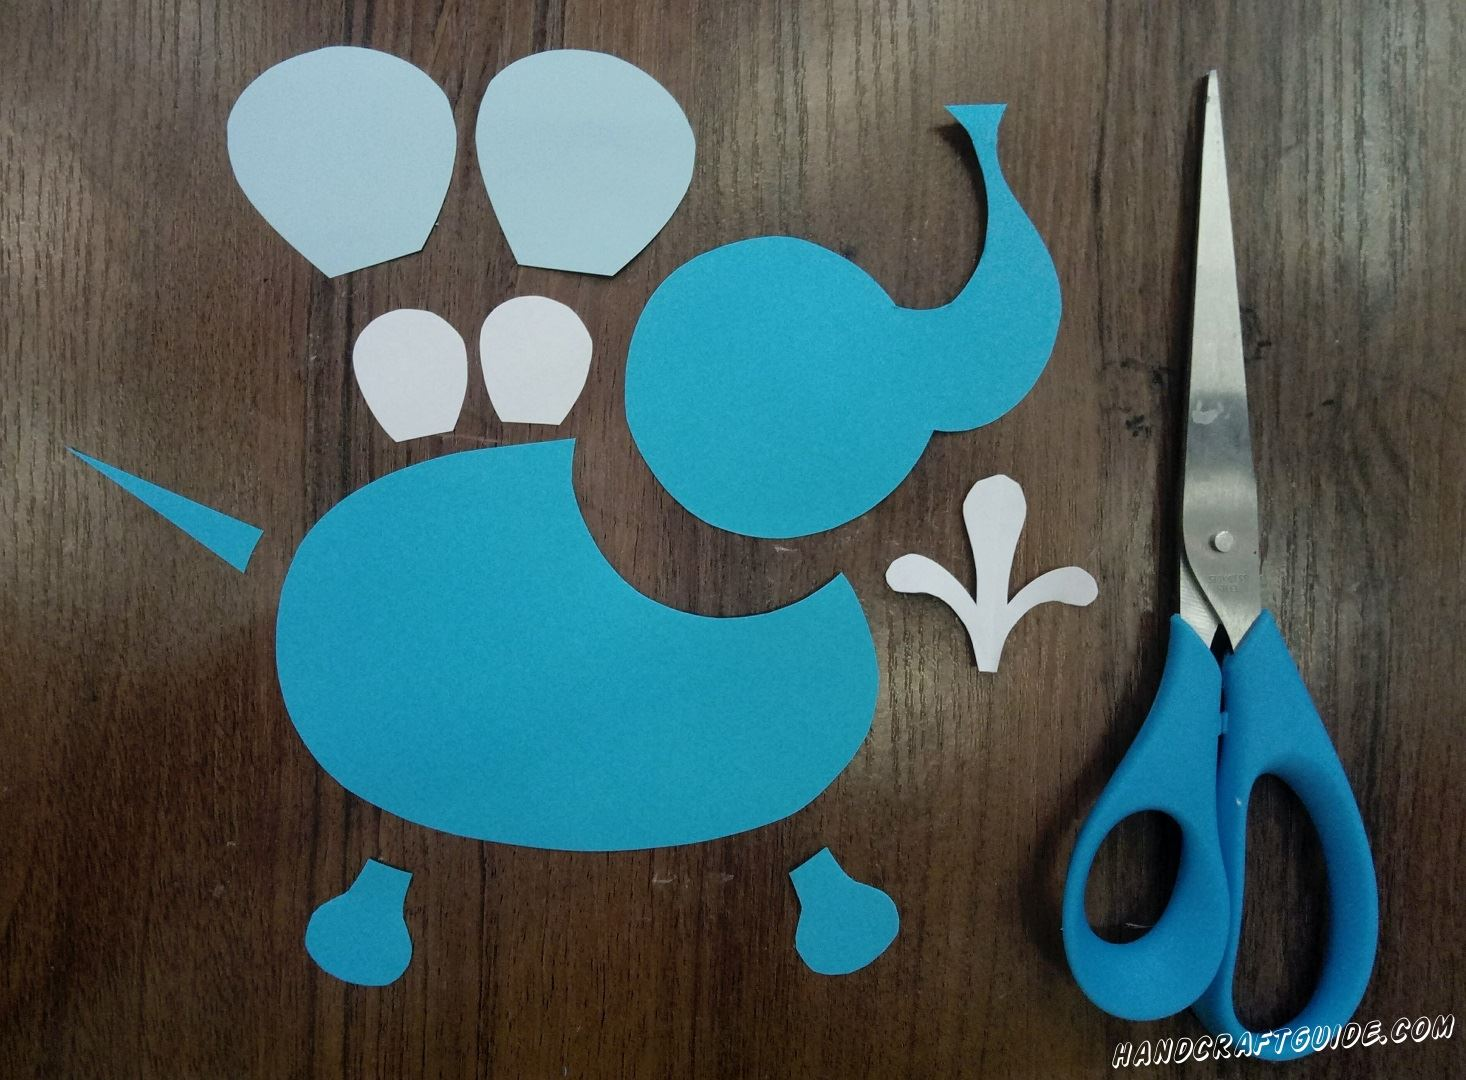 From white, blue, blue paper, we cut out all the details we need, as in the photo.